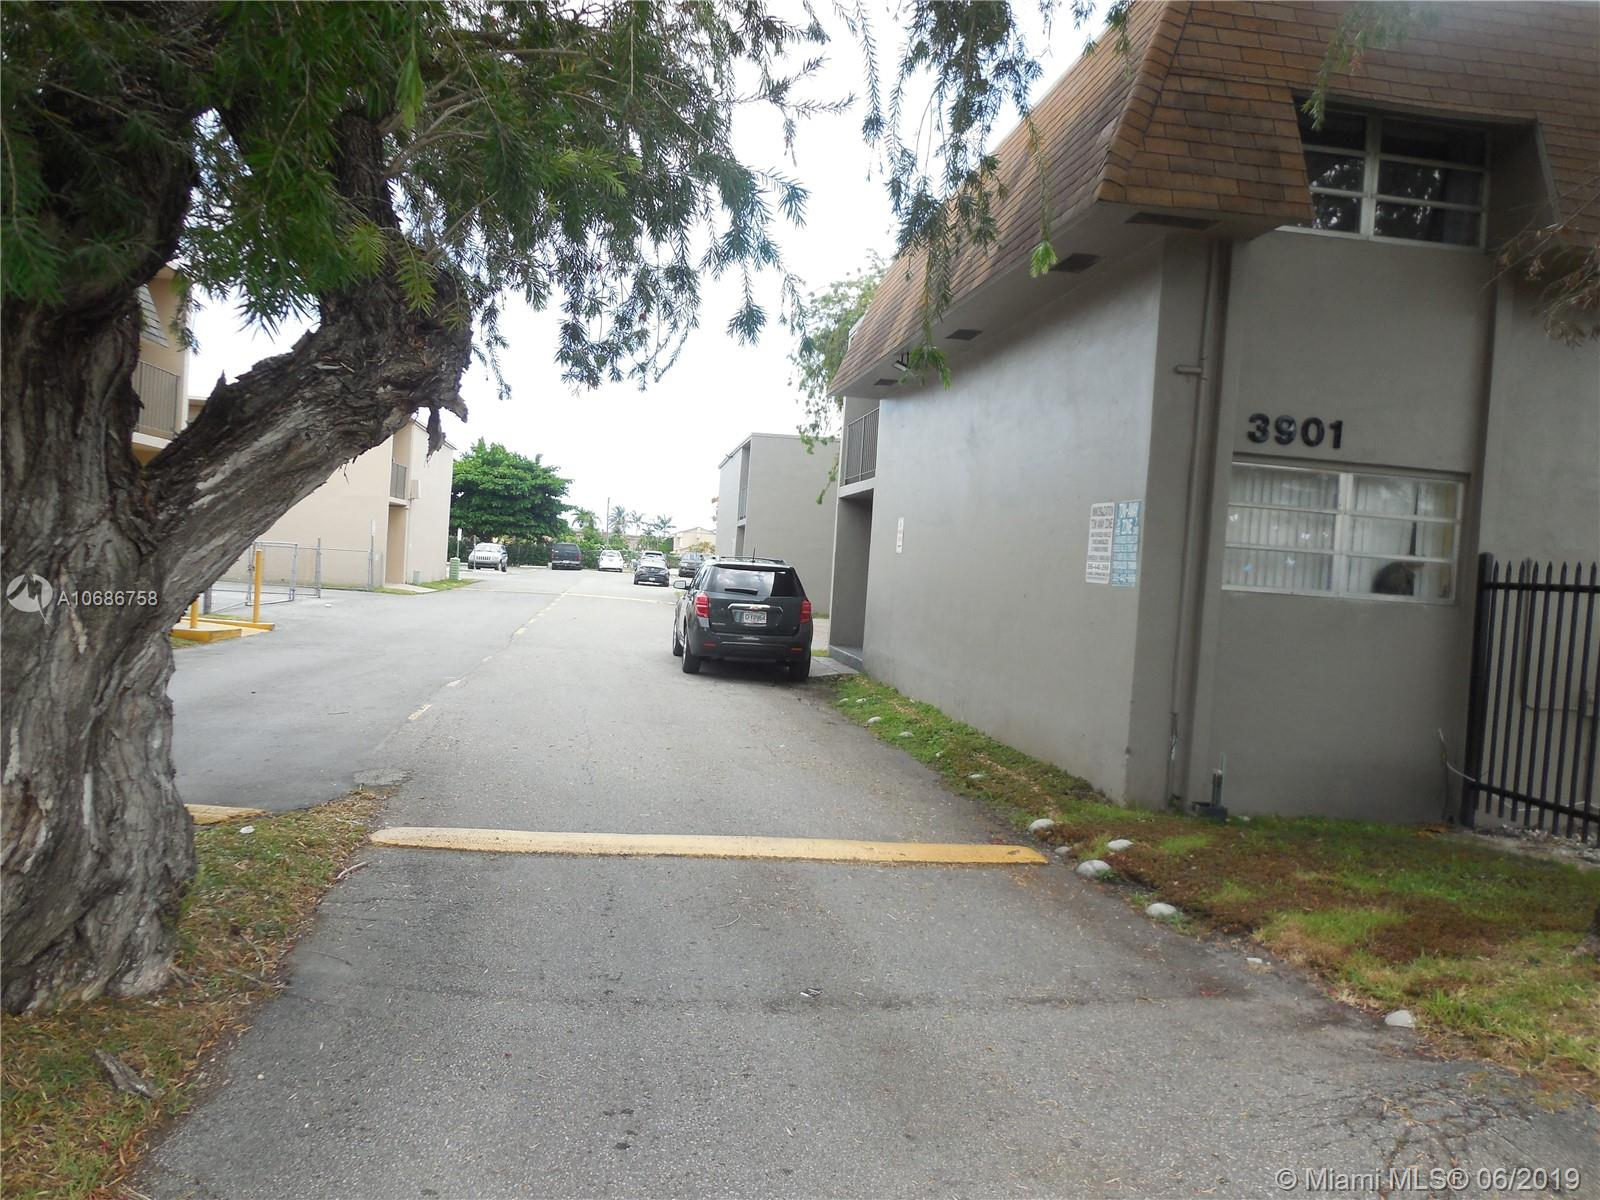 3901 SW 112th Ave #50 For Sale A10686758, FL